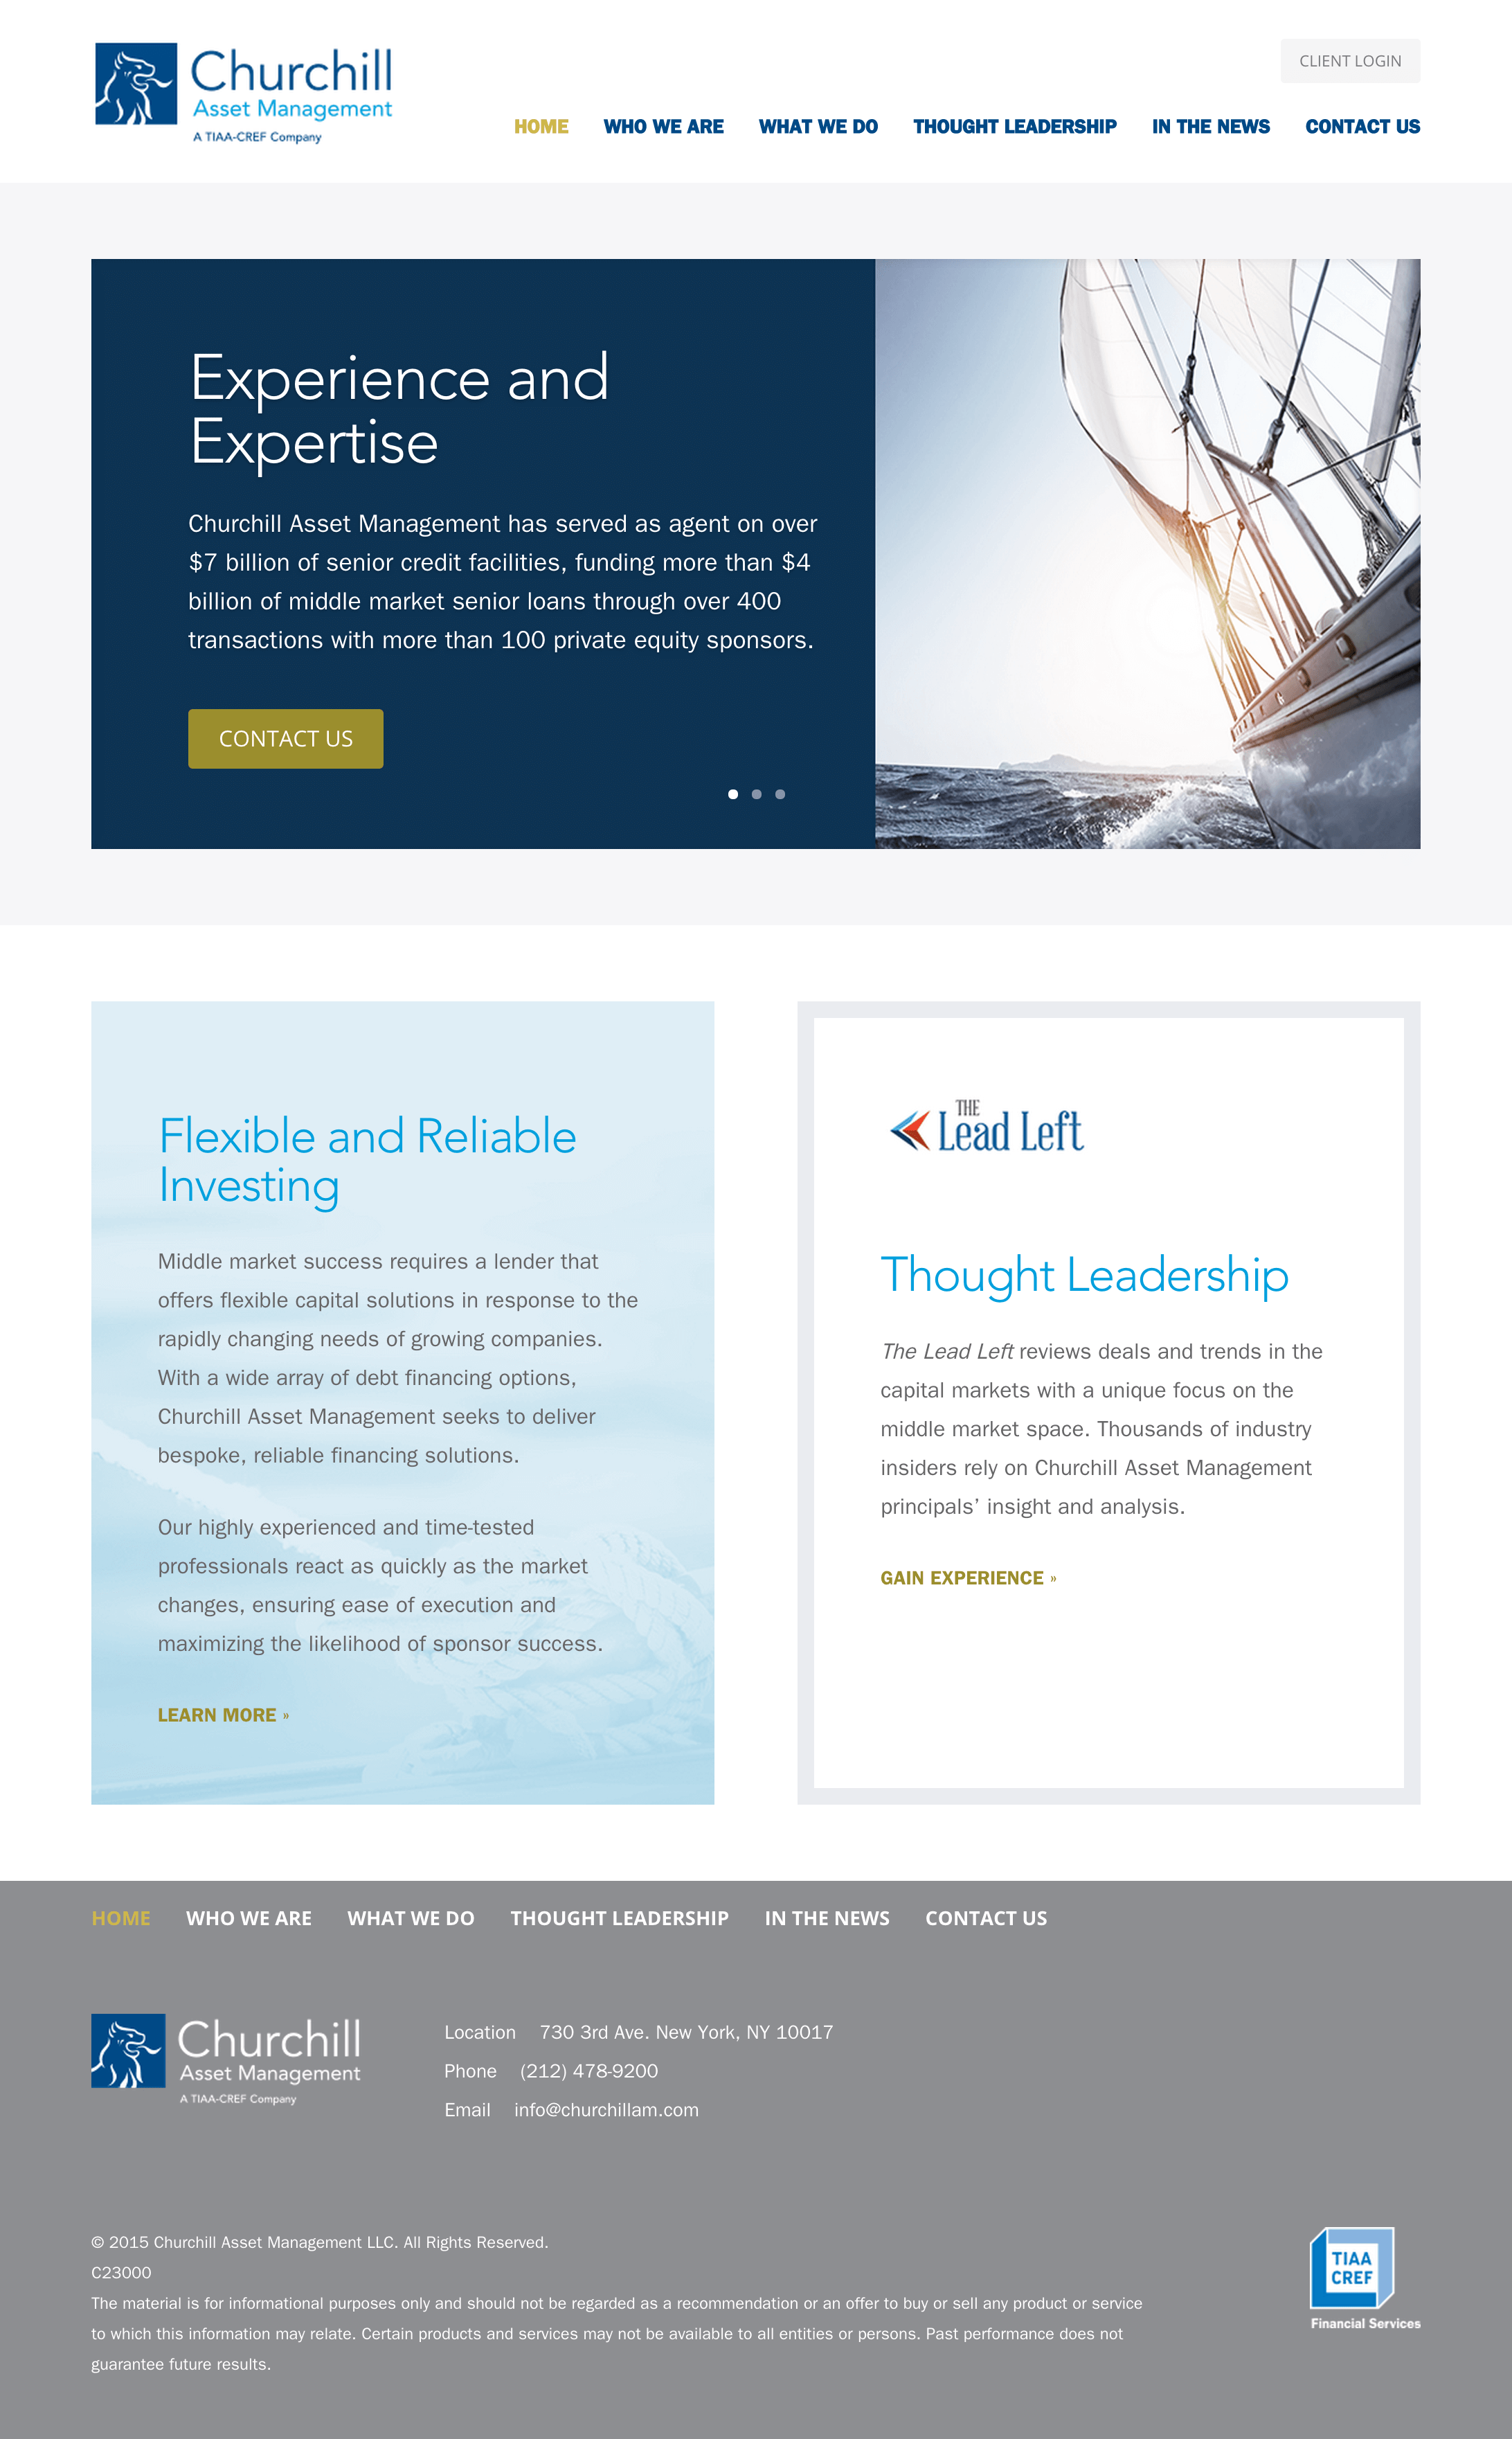 Churchill Asset Management home page